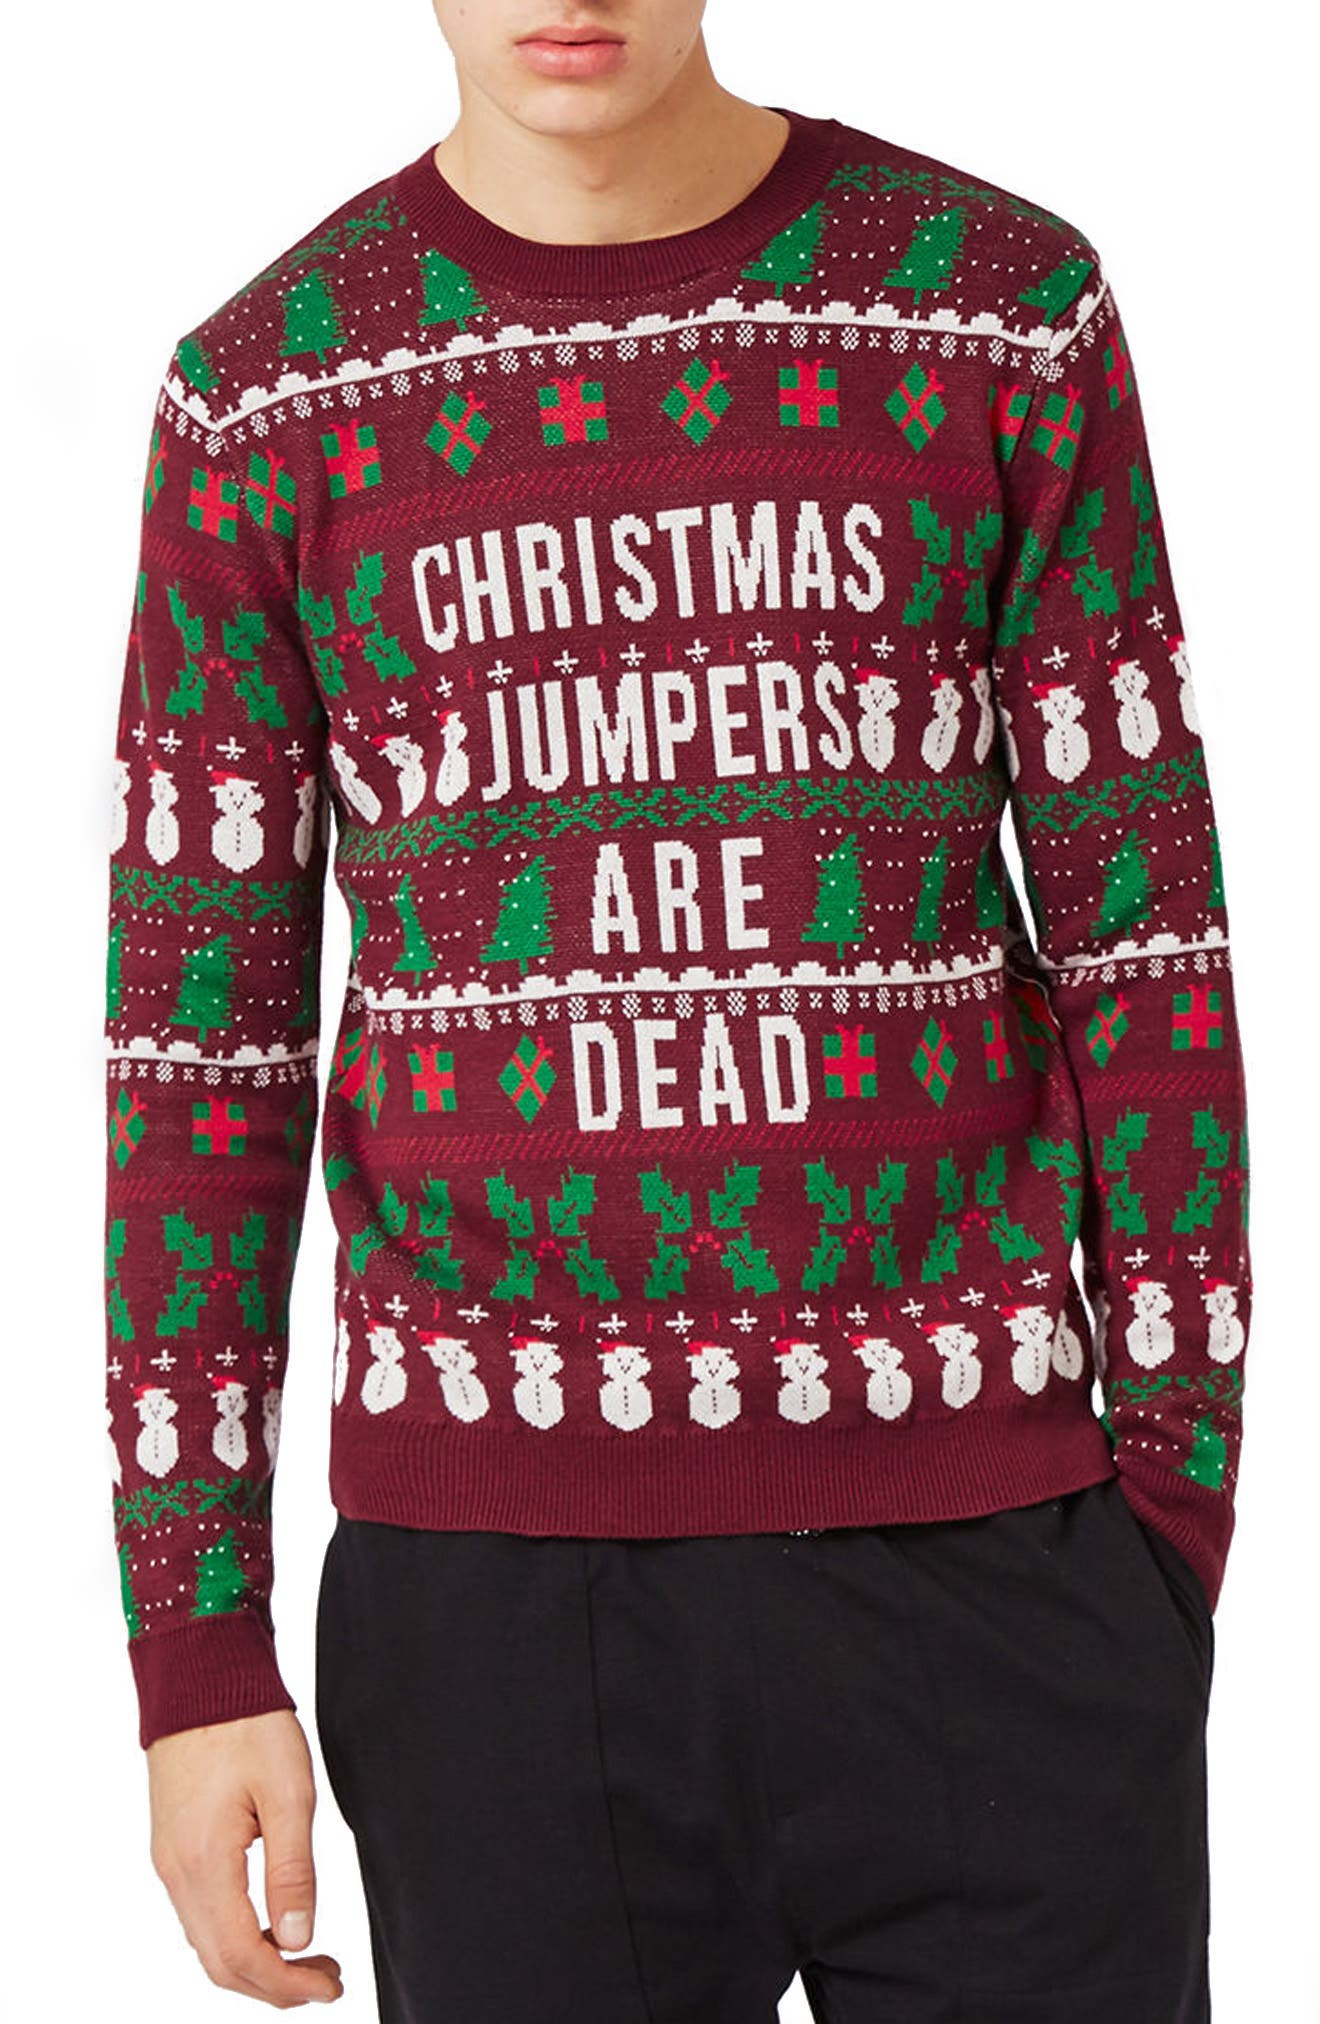 Christmas Jumpers Are Dead Sweater,                             Main thumbnail 1, color,                             930